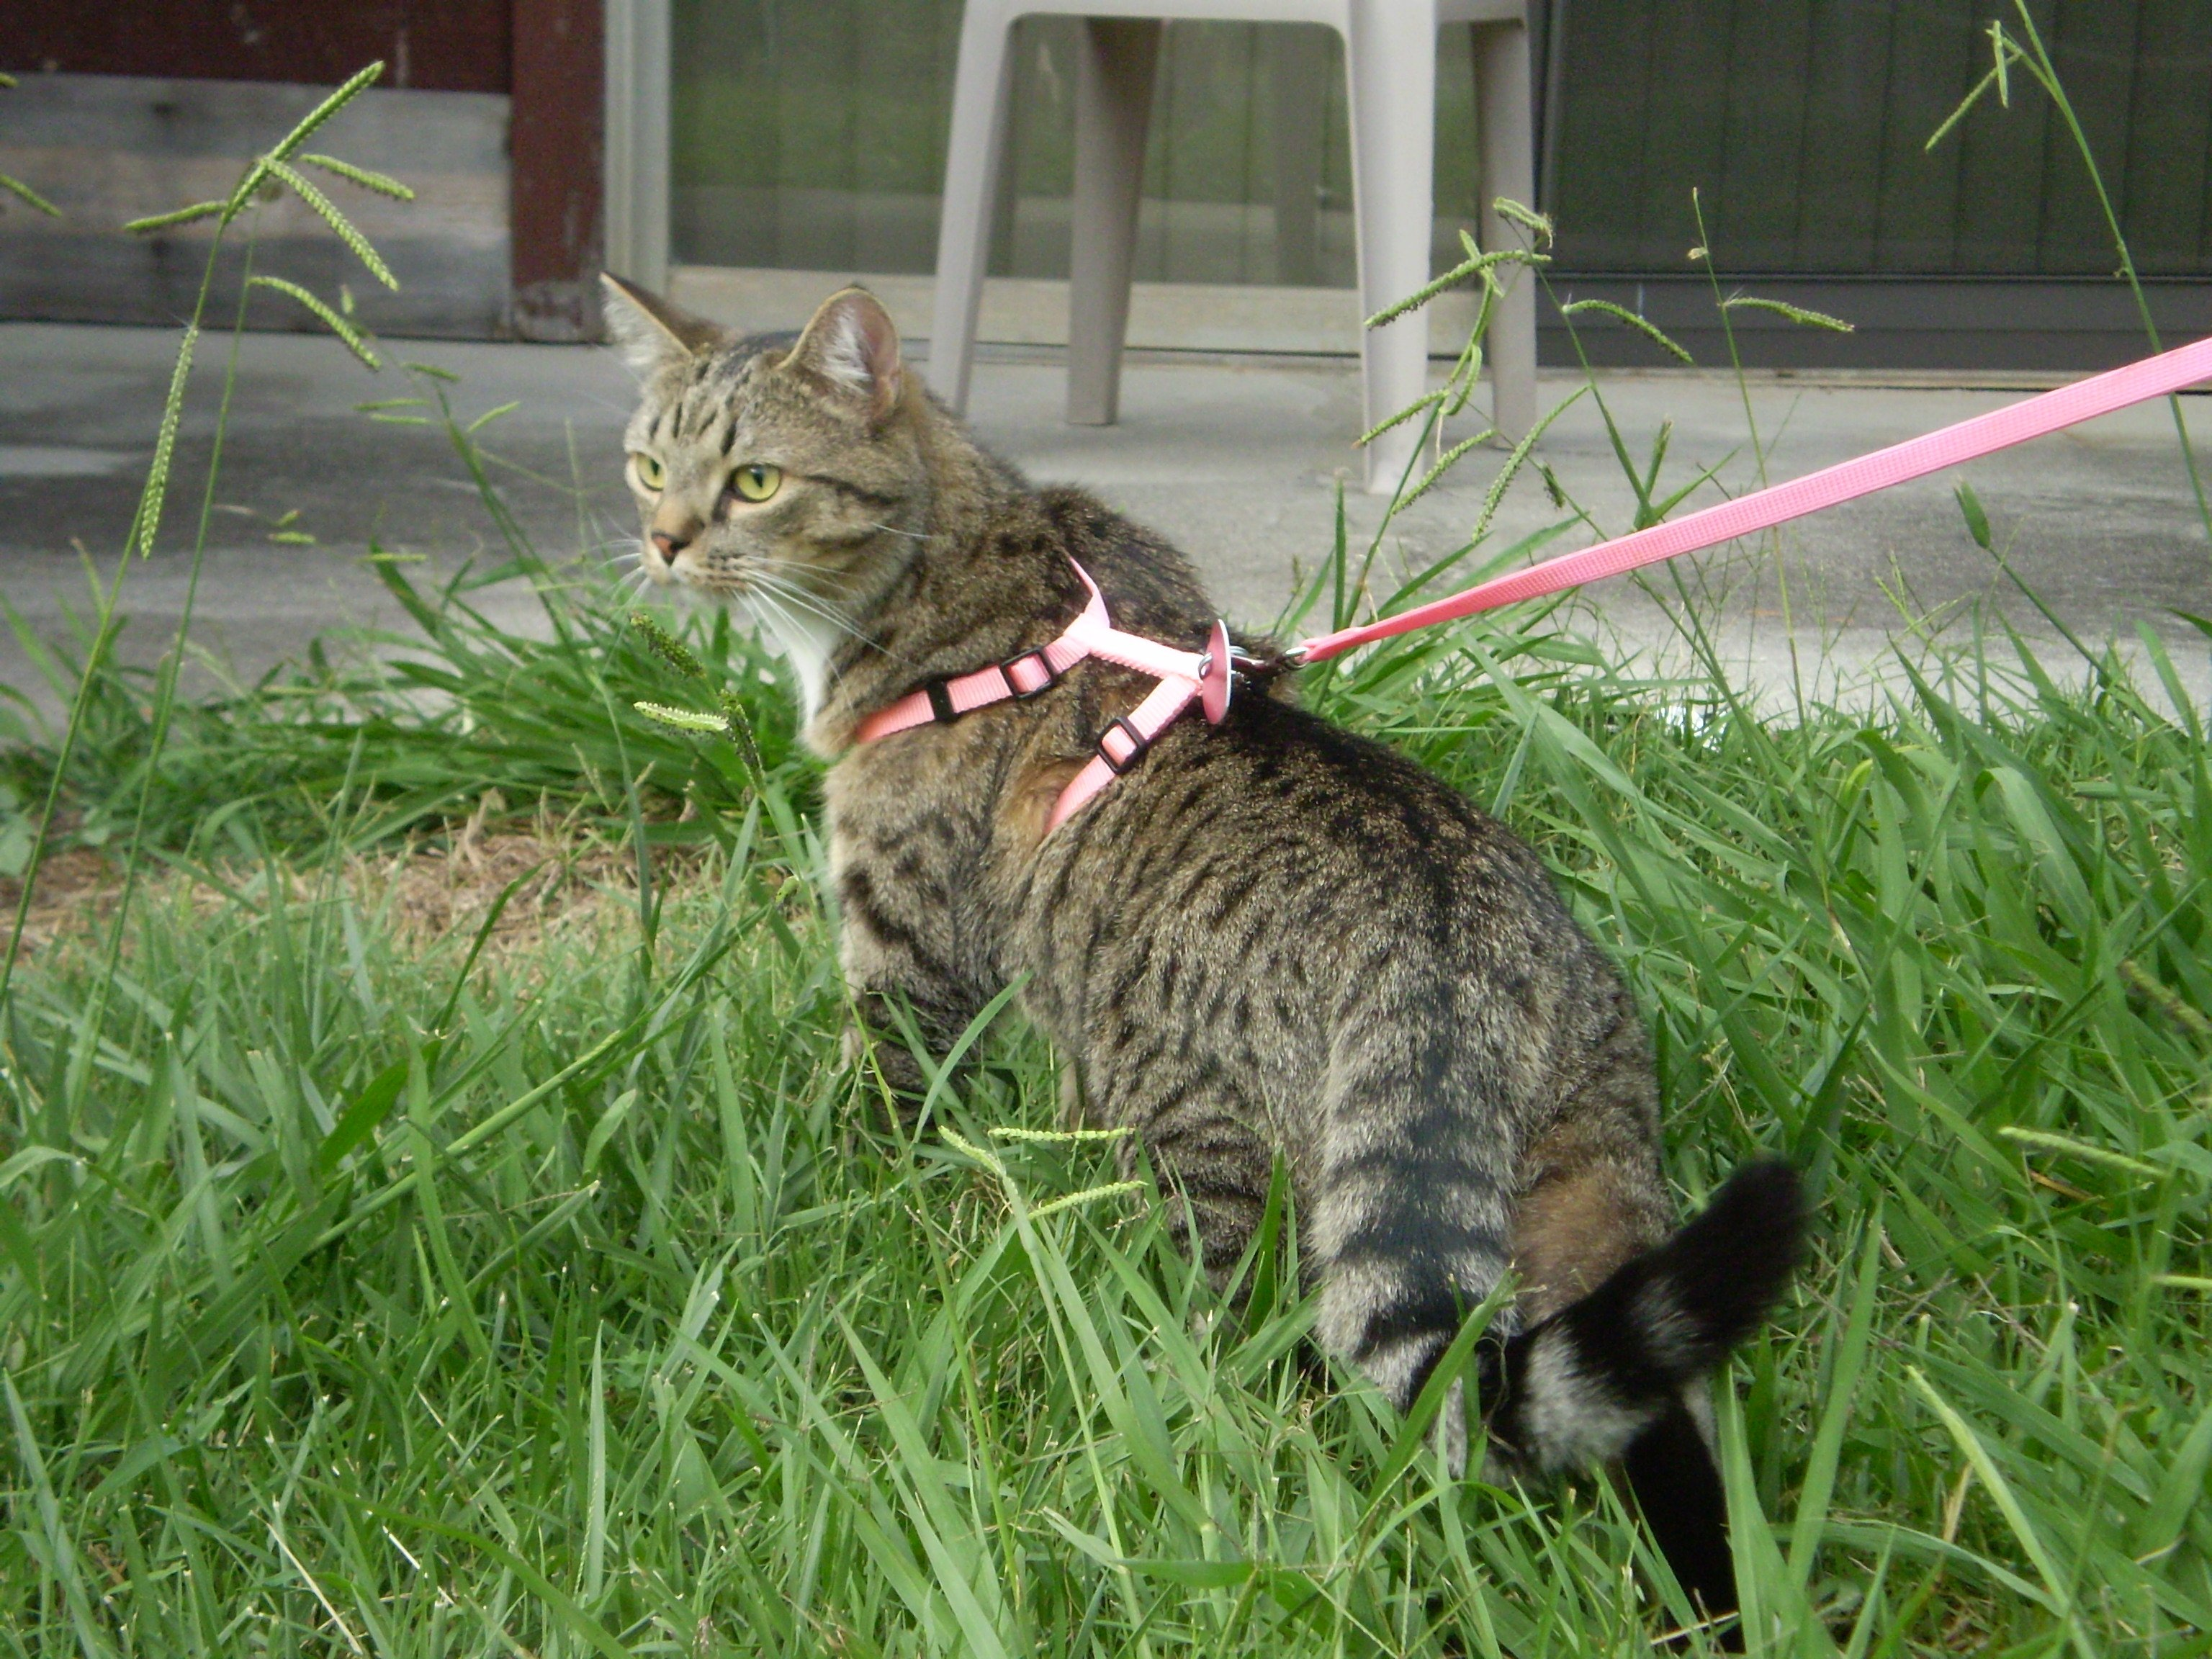 how to train a cat to walk on a leash how to leash train a cat how to walk a cat how to train your cat to walk on a leash how to teach a cat to walk on a leash how to leash train a kitten how to teach your cat to walk on a leash how to train a kitten to walk on a leash how to get your cat to walk on a leash how to walk a cat on a leash how to train your cat to go on walks how to leash train your cat how to train my cat to walk on a leash how to get a cat to walk on a leash how to train cat on leash how to walk your cat on a leash how does a cat harness go on how to make cat harness how to get cat to walk on leash how to train a cat to use a leash how to get my cat to walk on a leash how to train a cat to go on walks how to train a cat to walk on a lead how to train kitten to walk on leash how to train your kitten to walk on a leash how to teach my cat to walk on a leash how do you train a cat to walk on a leash how to get your cat to go on walks how to leash a cat how to train cats to walk on leash how to train your cat to go outside on a leash how to lead train a cat how to teach a kitten to walk on a leash how do you leash train a cat how do you walk a cat how to train your cat to walk how to train my kitten to walk on a leash how to make your cat walk on a leash how to walk a cat with a leash how to train your cat to use a leash how to train a cat to walk how to get a cat used to a leash how do i train my cat to walk on a leash how to train cats to go on walks how to walk a cat outside how to train an older cat to walk on a leash how to train cat to go on walks how to get cats to walk on a leash how to walk my cat on a leash how to train a bengal cat to walk on a leash how long does it take to harness train a cat how to teach your cat to go on walks how to leash train kitten how to leash train cats how do you teach a cat to walk on a leash how to train a kitten on a leash how to make a cat walk on a leash how to get a cat used to a harness and leash how to get a 